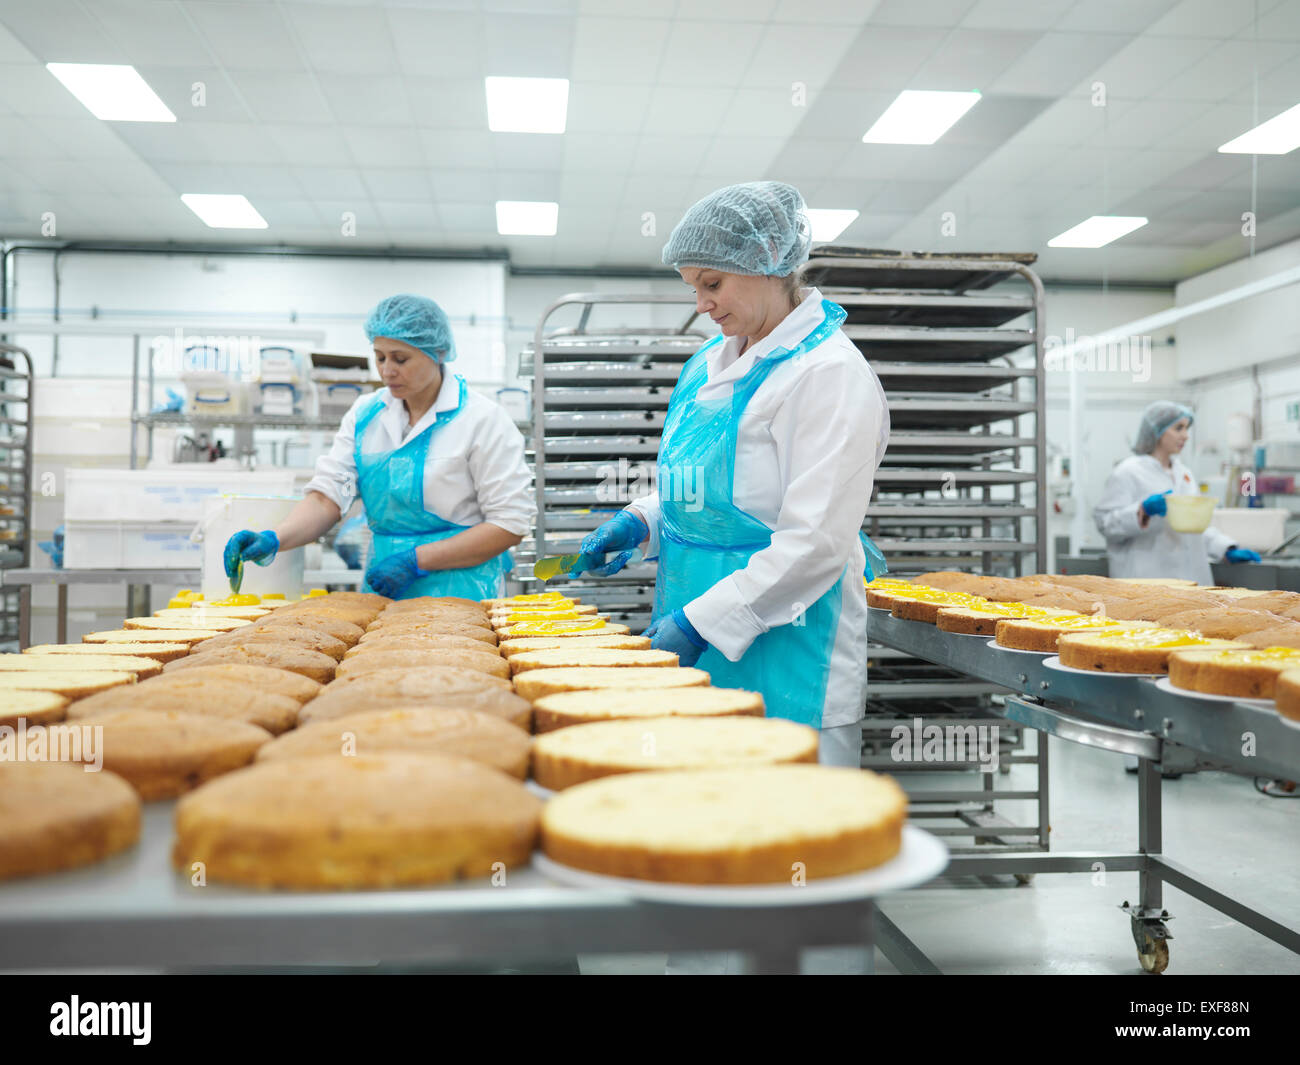 Female workers spreading filling on cakes in cake factory - Stock Image